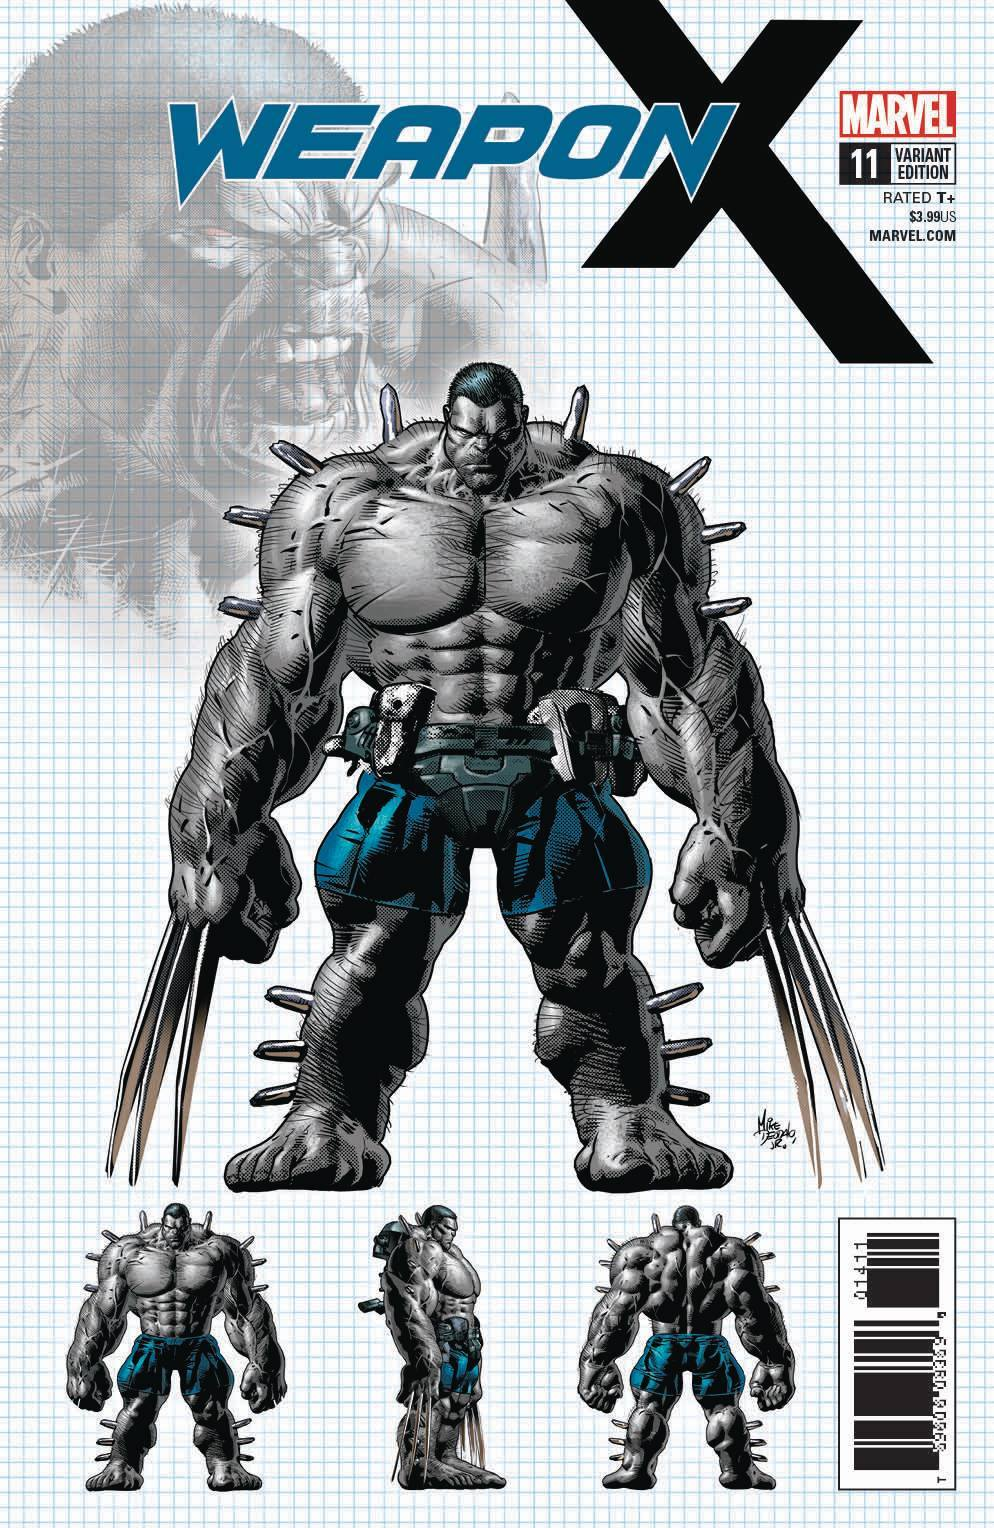 Weapon X #11 1:25 Mike Deodato Cover - WEAPON H!